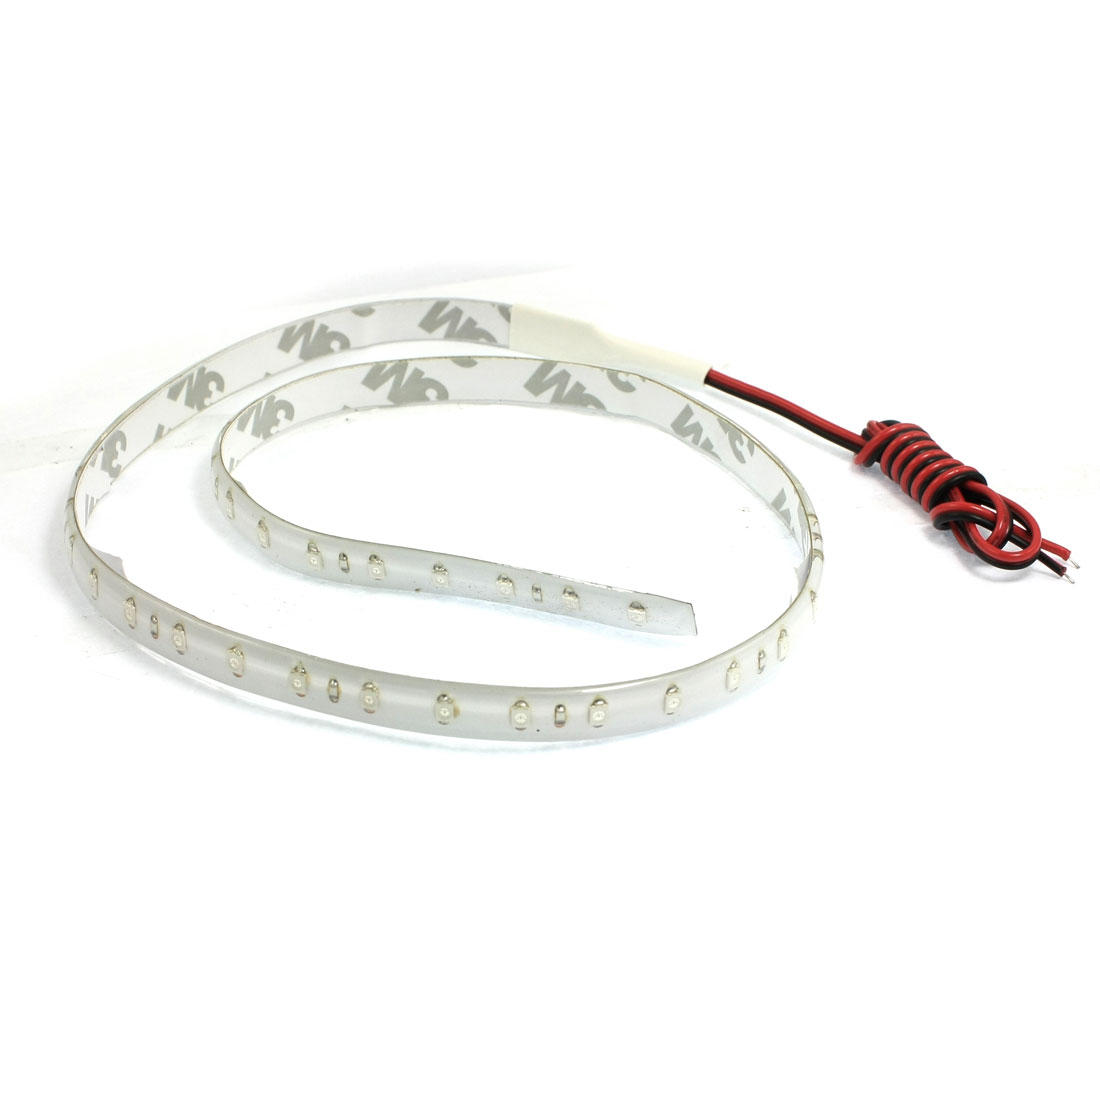 Car Red Green Blue 48 LED 1210 SMD Flexible Decorative Bulb Light Strip 60cm